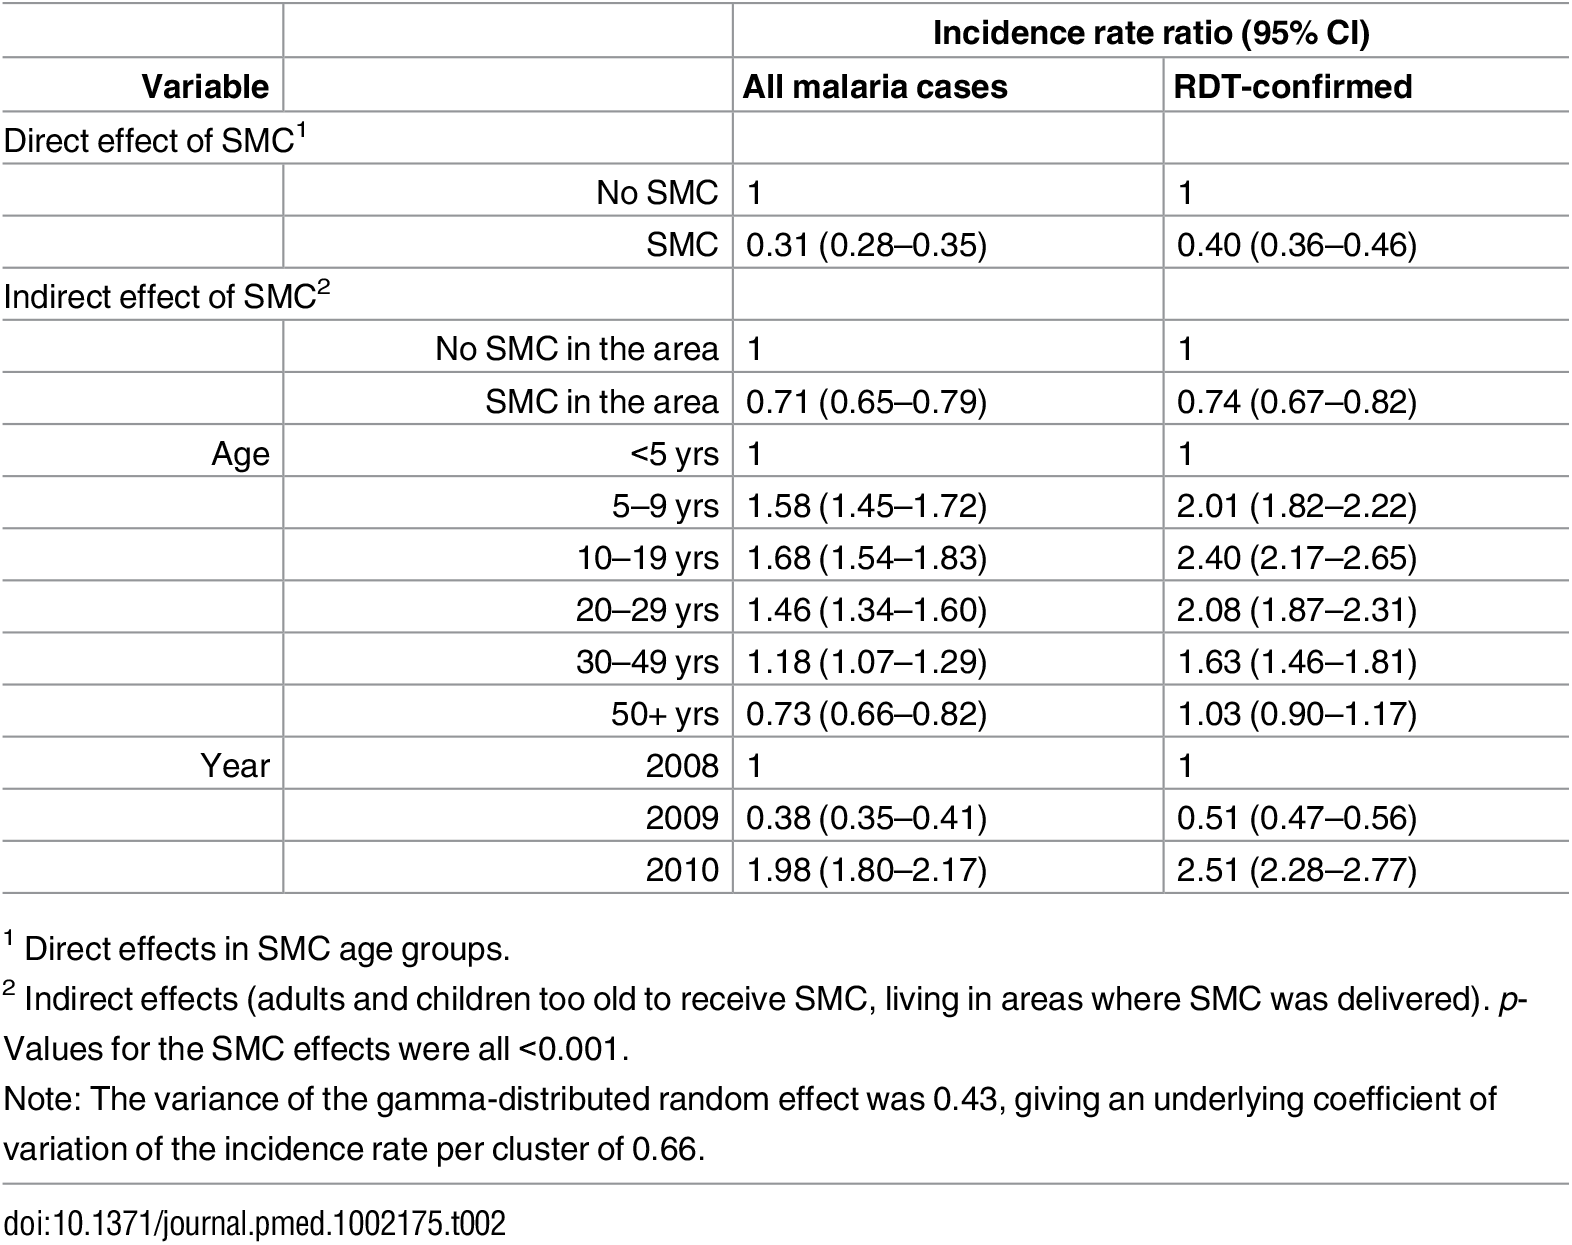 Rate ratios for the effect of SMC on the incidence of malaria.